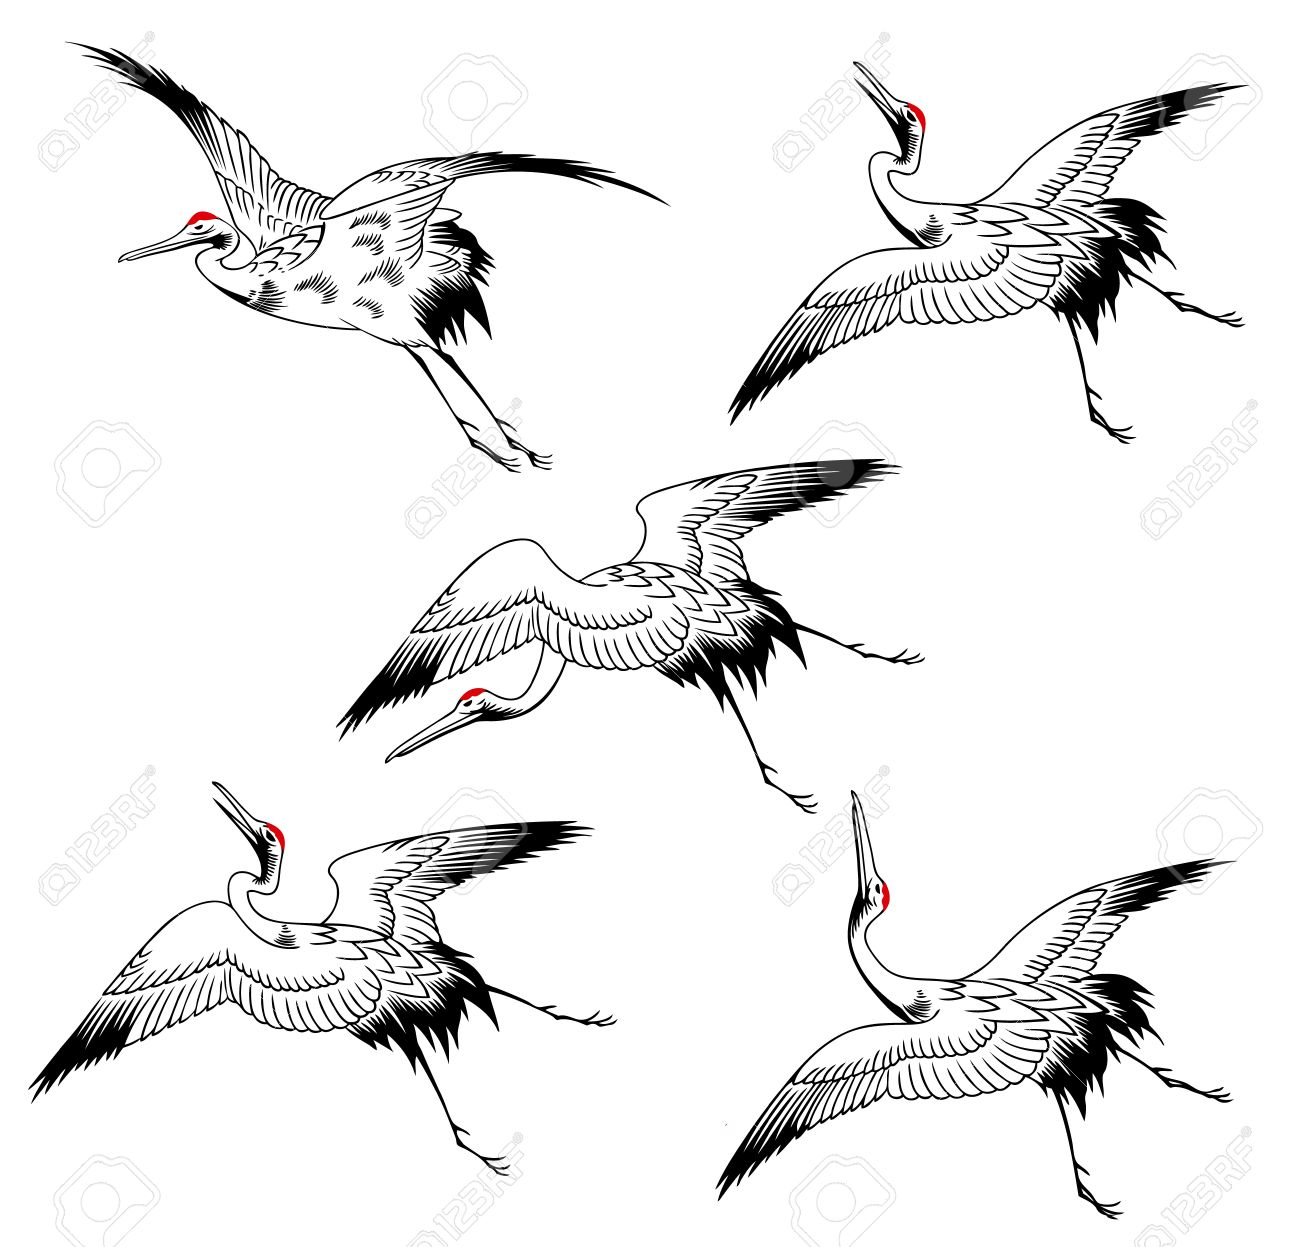 Japanese Crane clipart #11, Download drawings